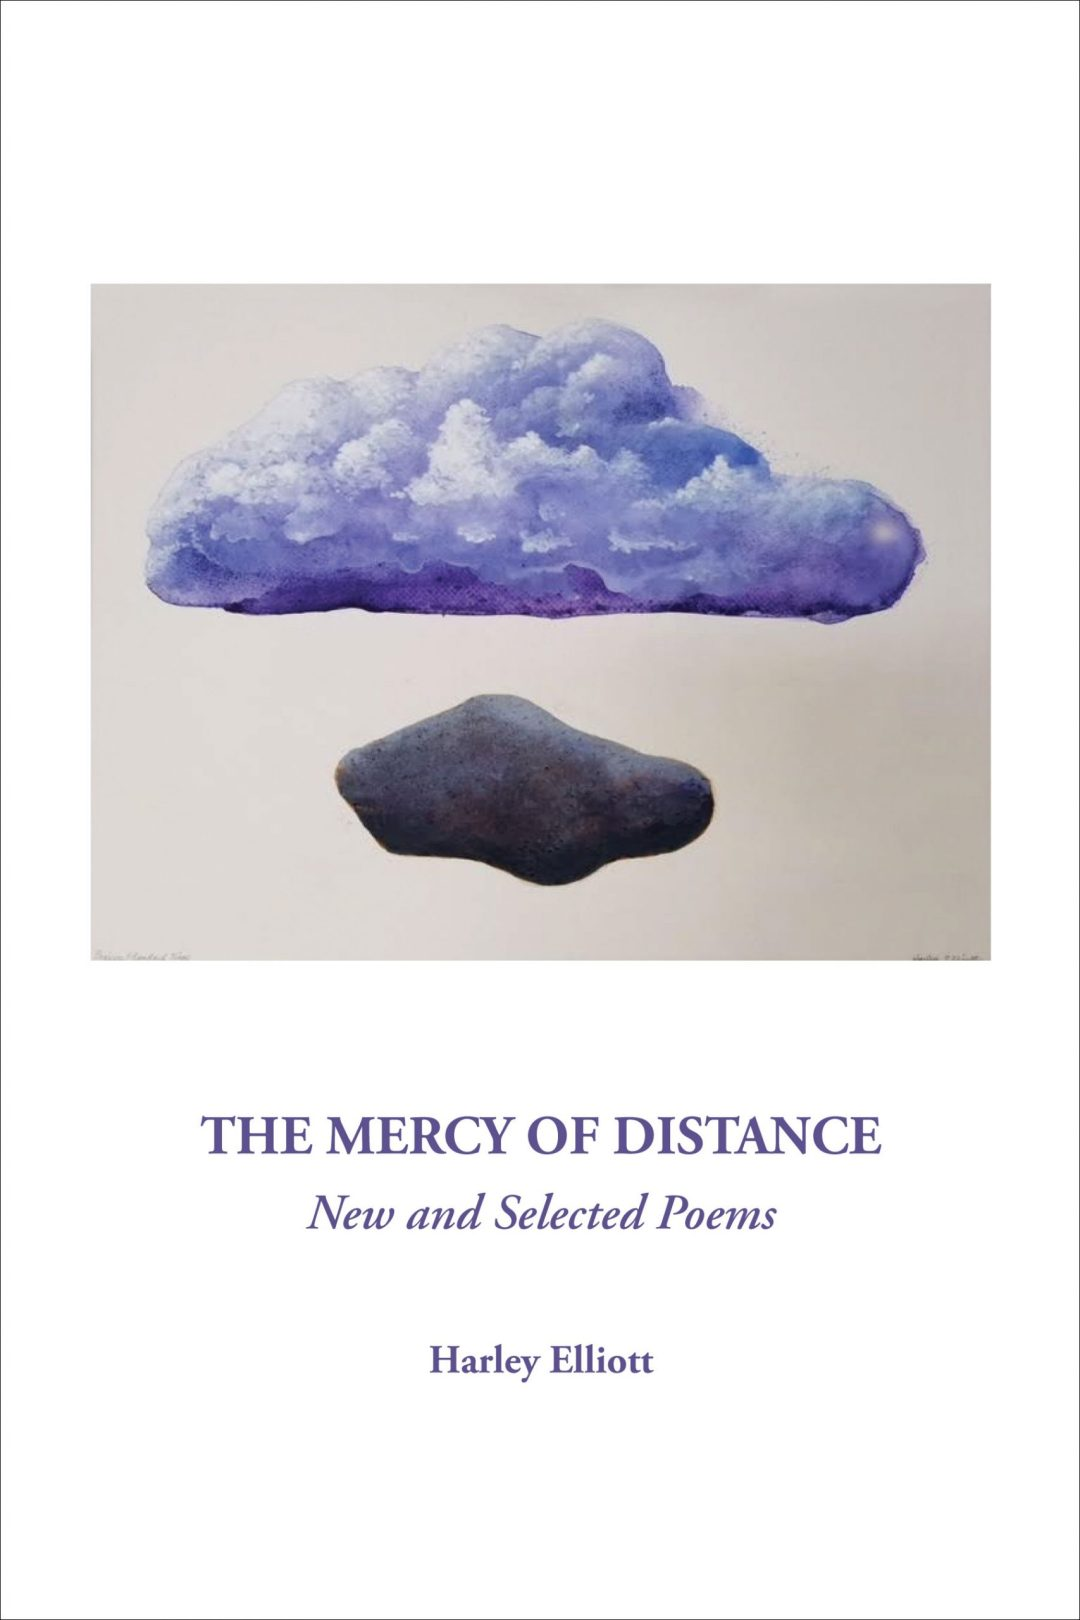 The Mercy of Distance